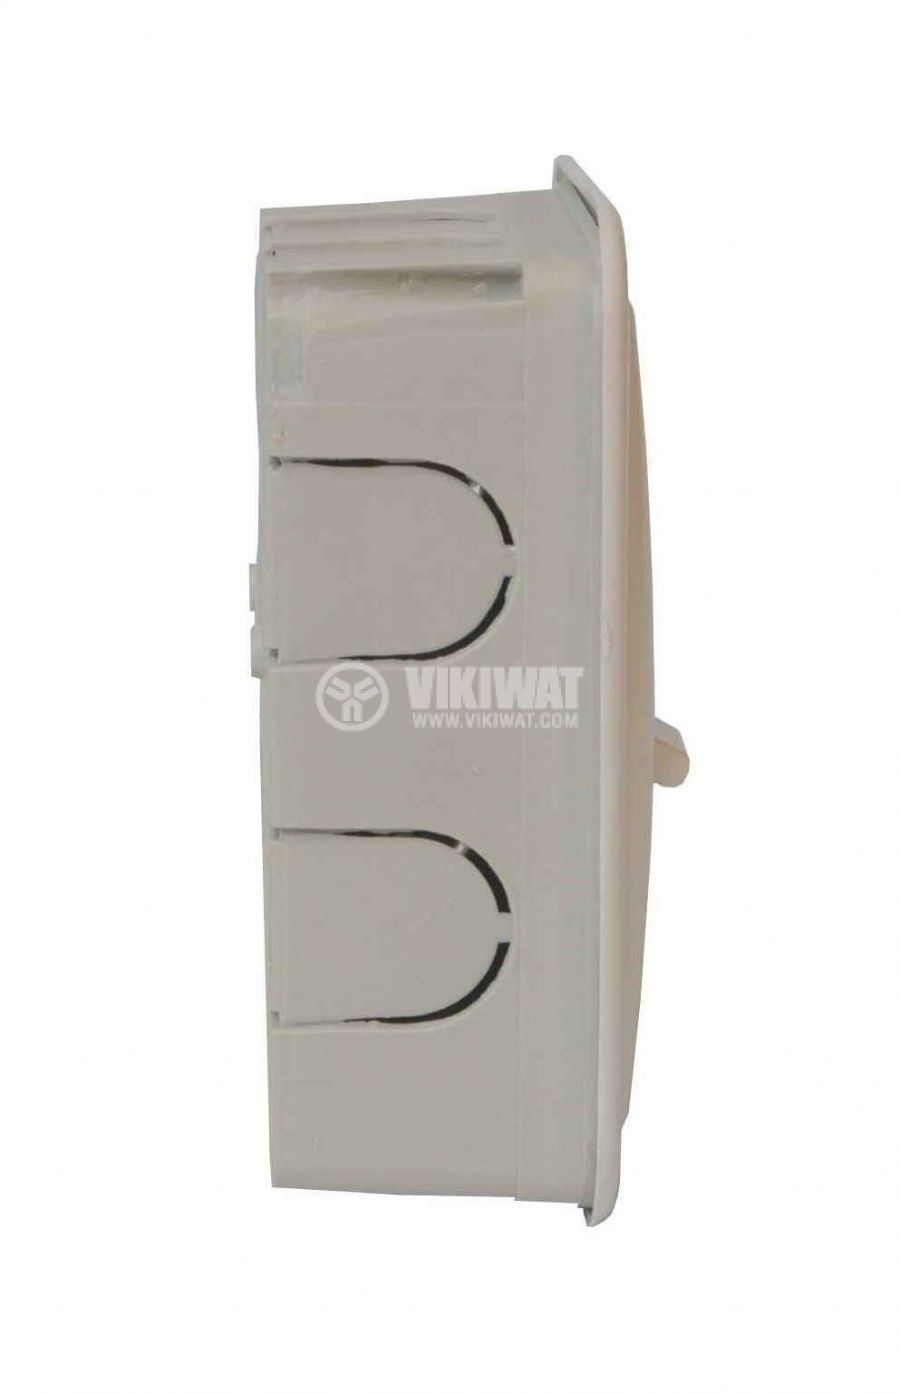 Electric switch for boilers, 25A, 250VAC, built in mounting - 2